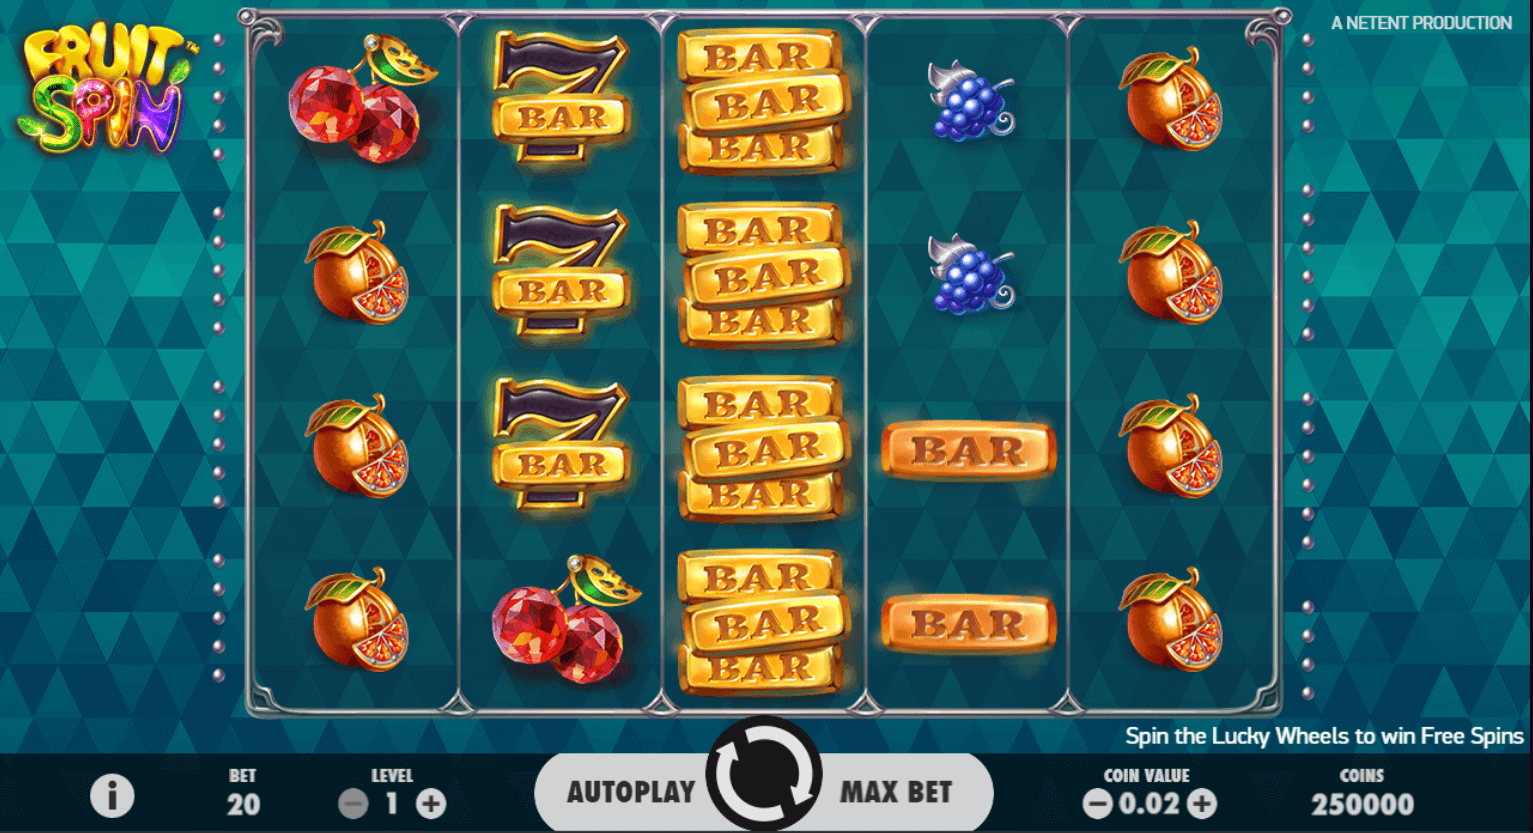 netent - fruit spin - reels - casinogroundsdotcom